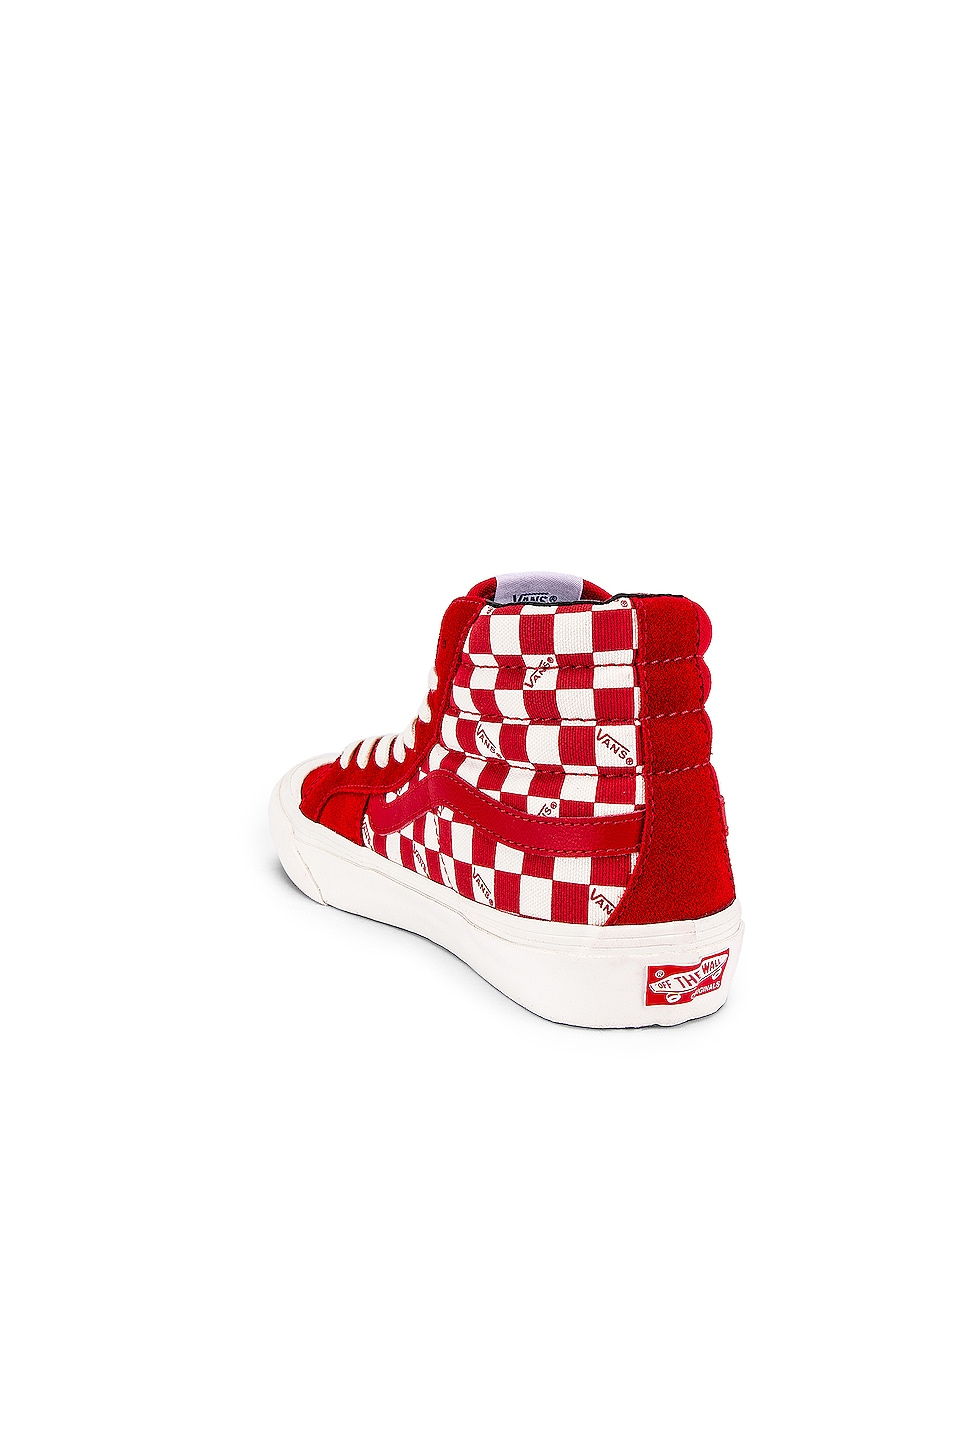 Image 3 of Vans Vault OG Style 138 LX in Racing Red & Checkerboard